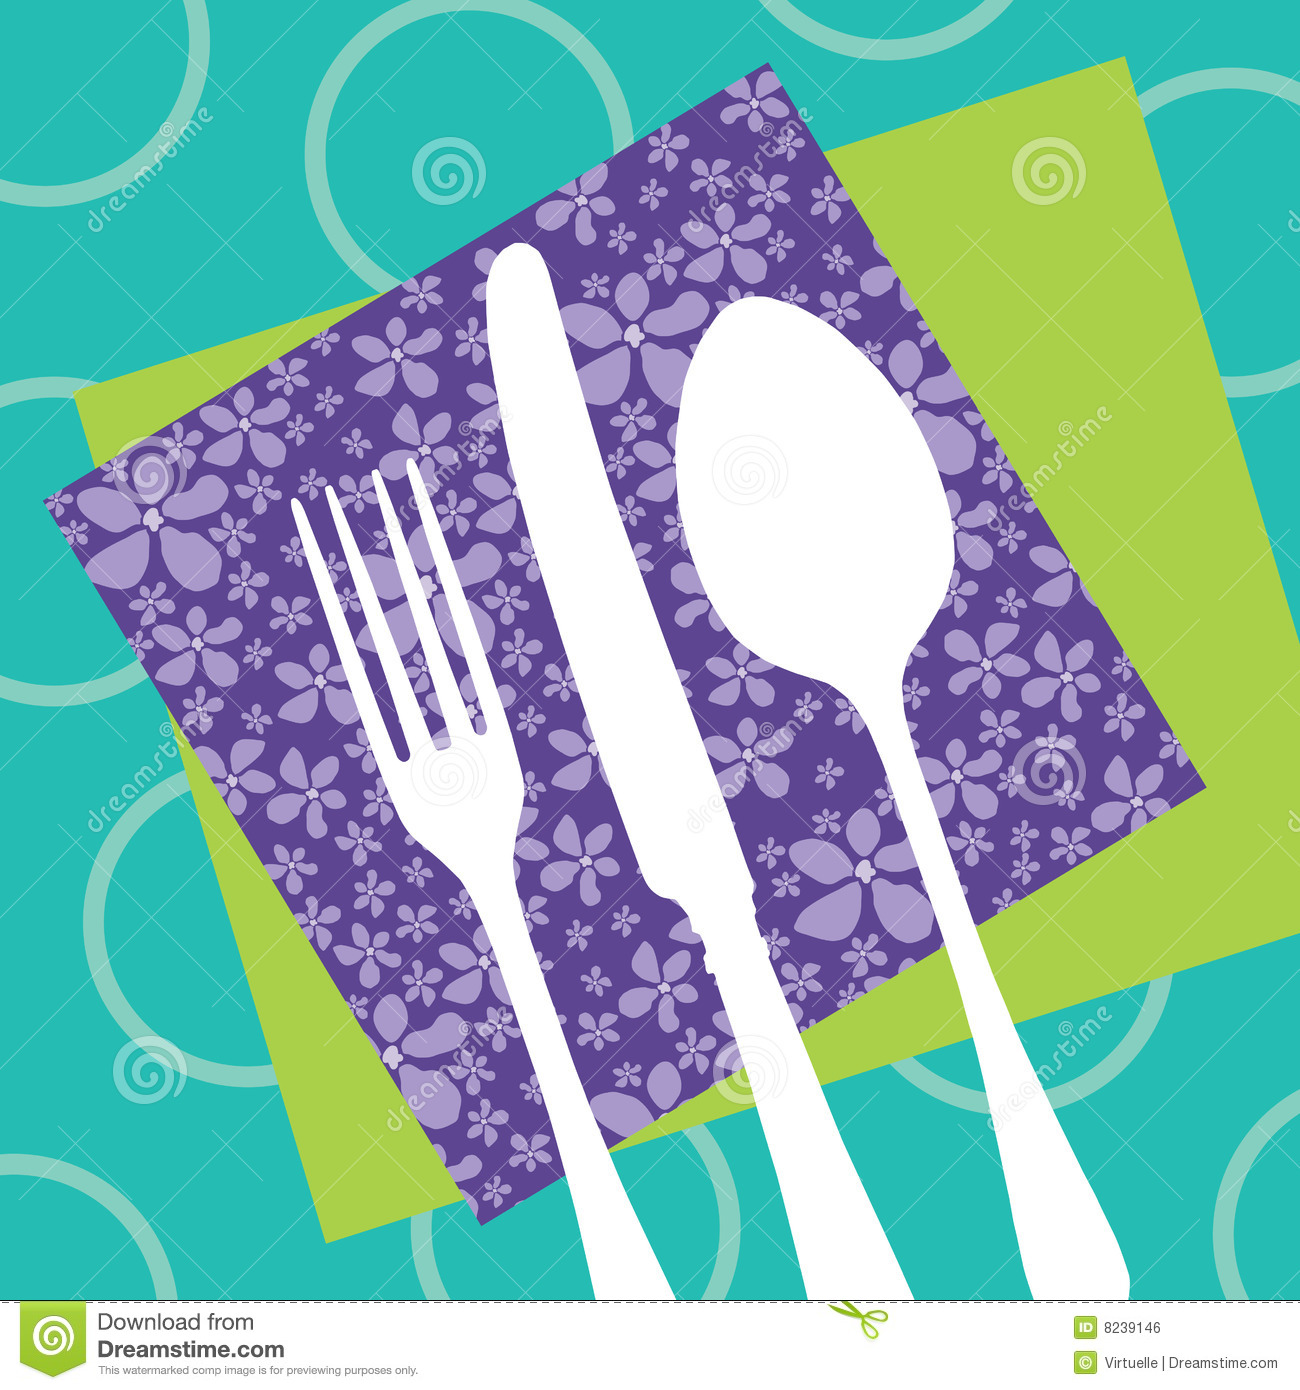 restaurant design with cutlery silhouette royalty free stock image